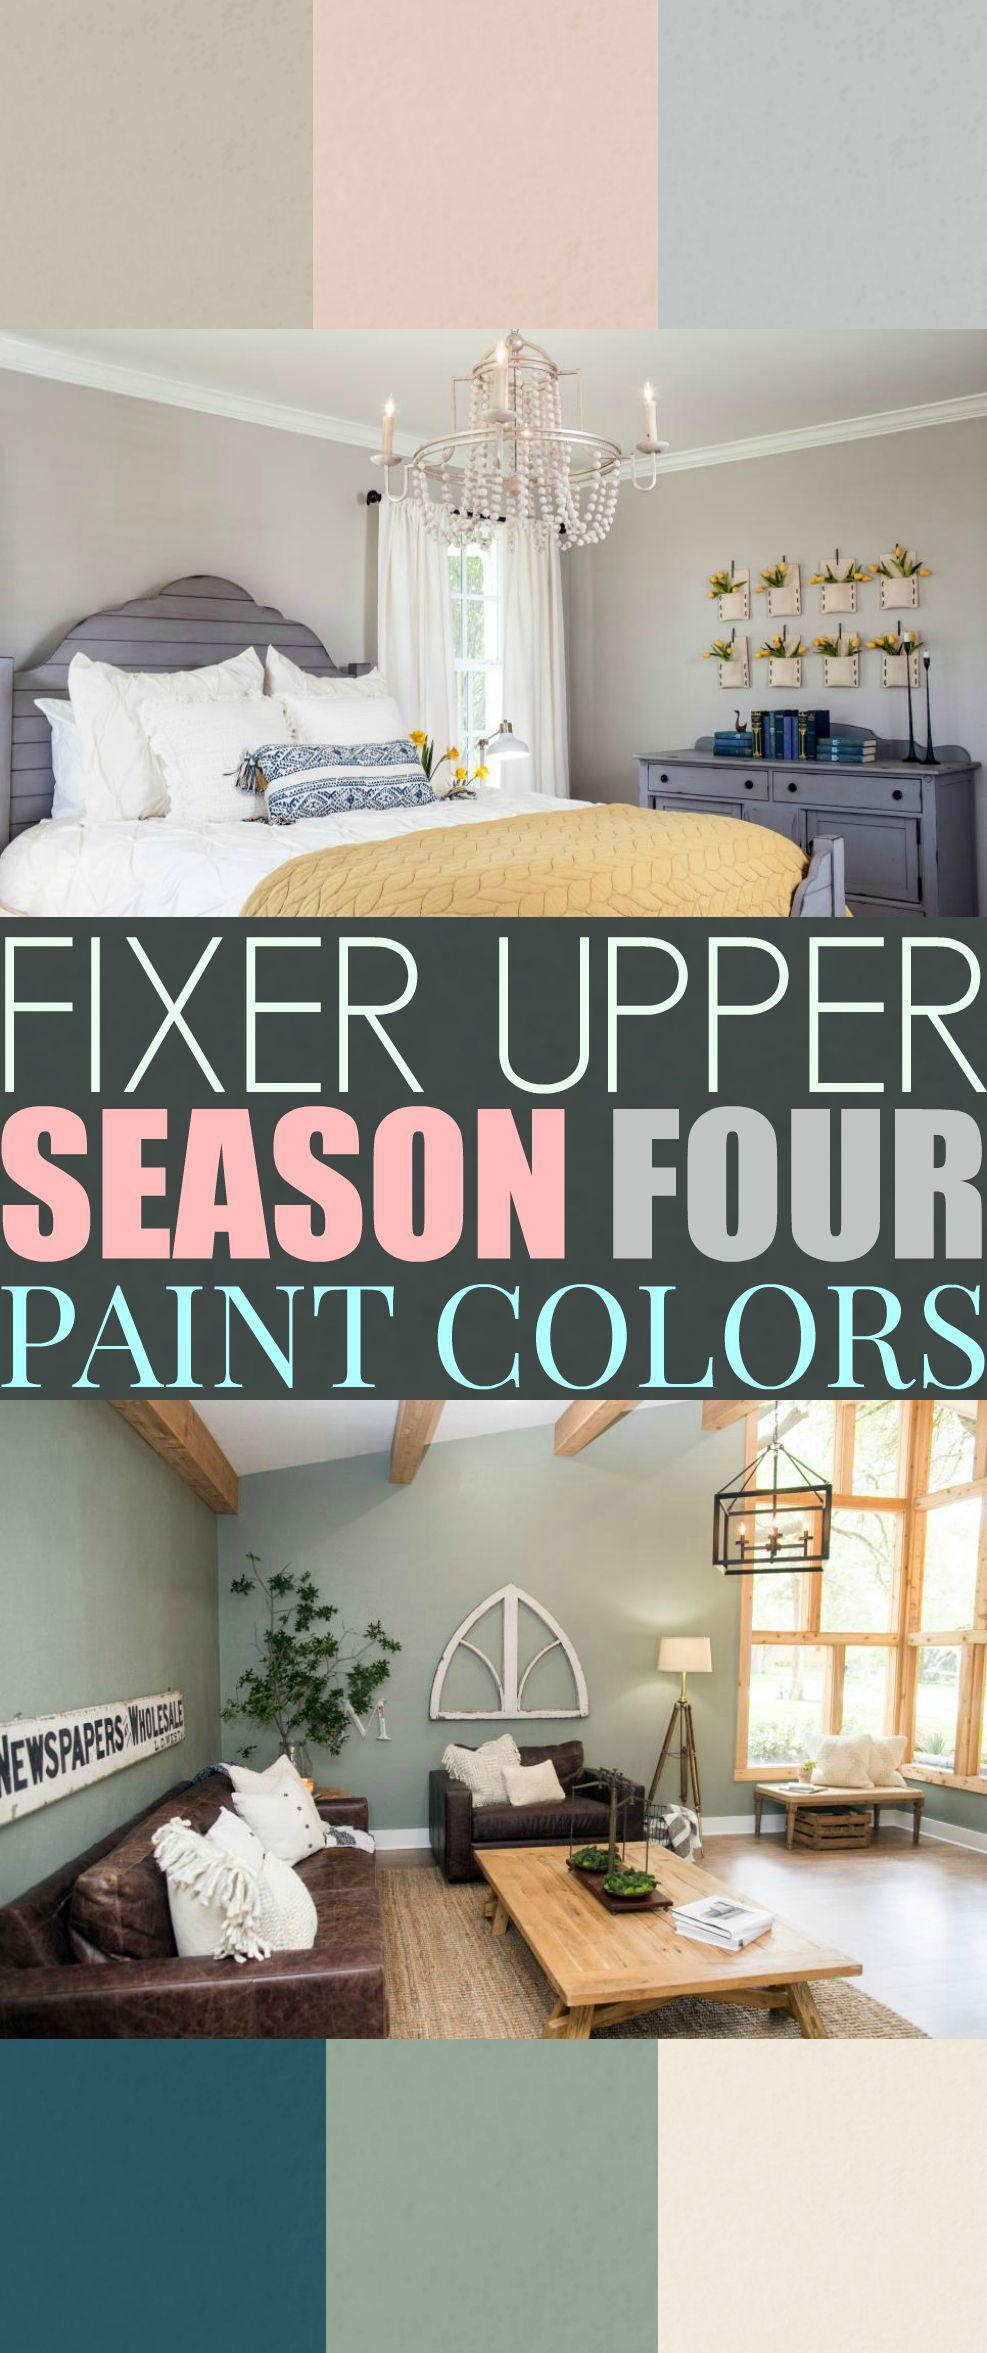 Fixer Upper Season Four Paint Colors Best Matches For Your Home The Weathered Fox Fixer Upper Living Room Paint Colors For Living Room Fixer Upper Paint Colors